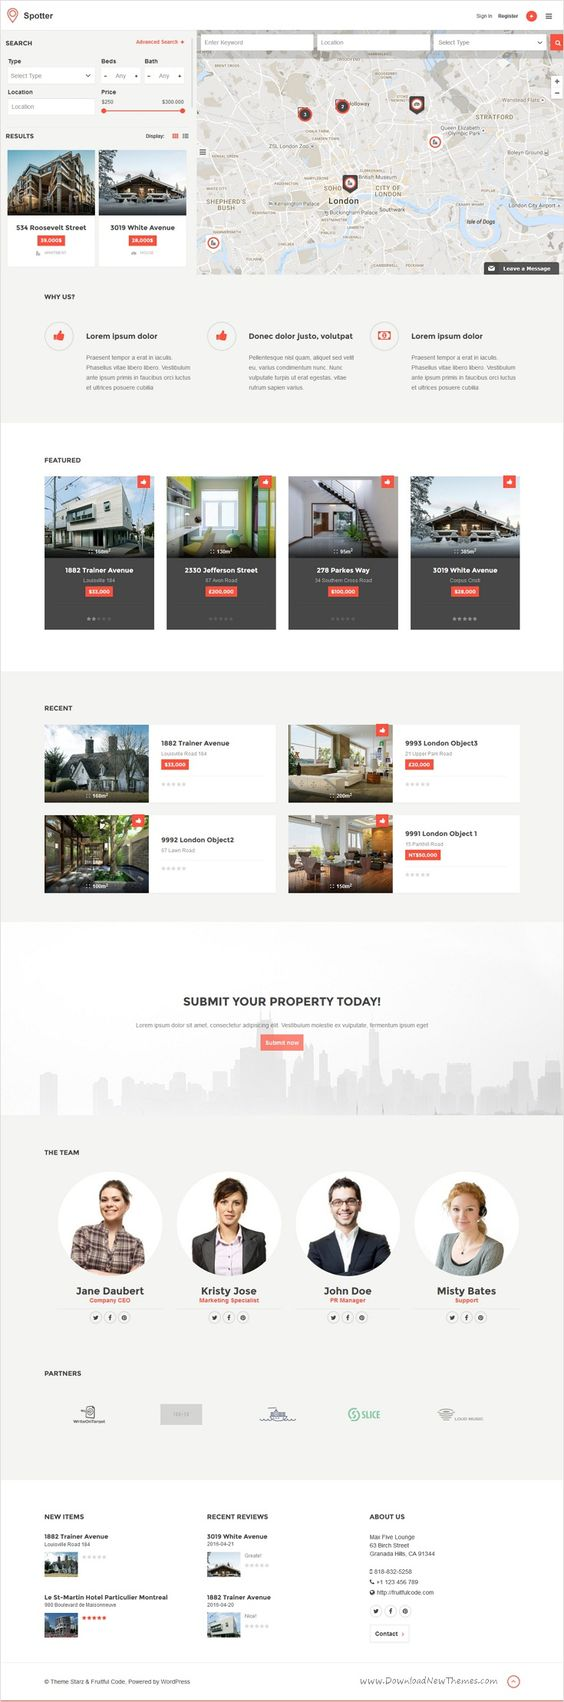 Google themes cars - Spotter Is The Universal 4 In 1 Theme With Google Maps Support For Directory Listing Car Dealership Restaurant Jobs Hotel And Any Other Type Of Listing